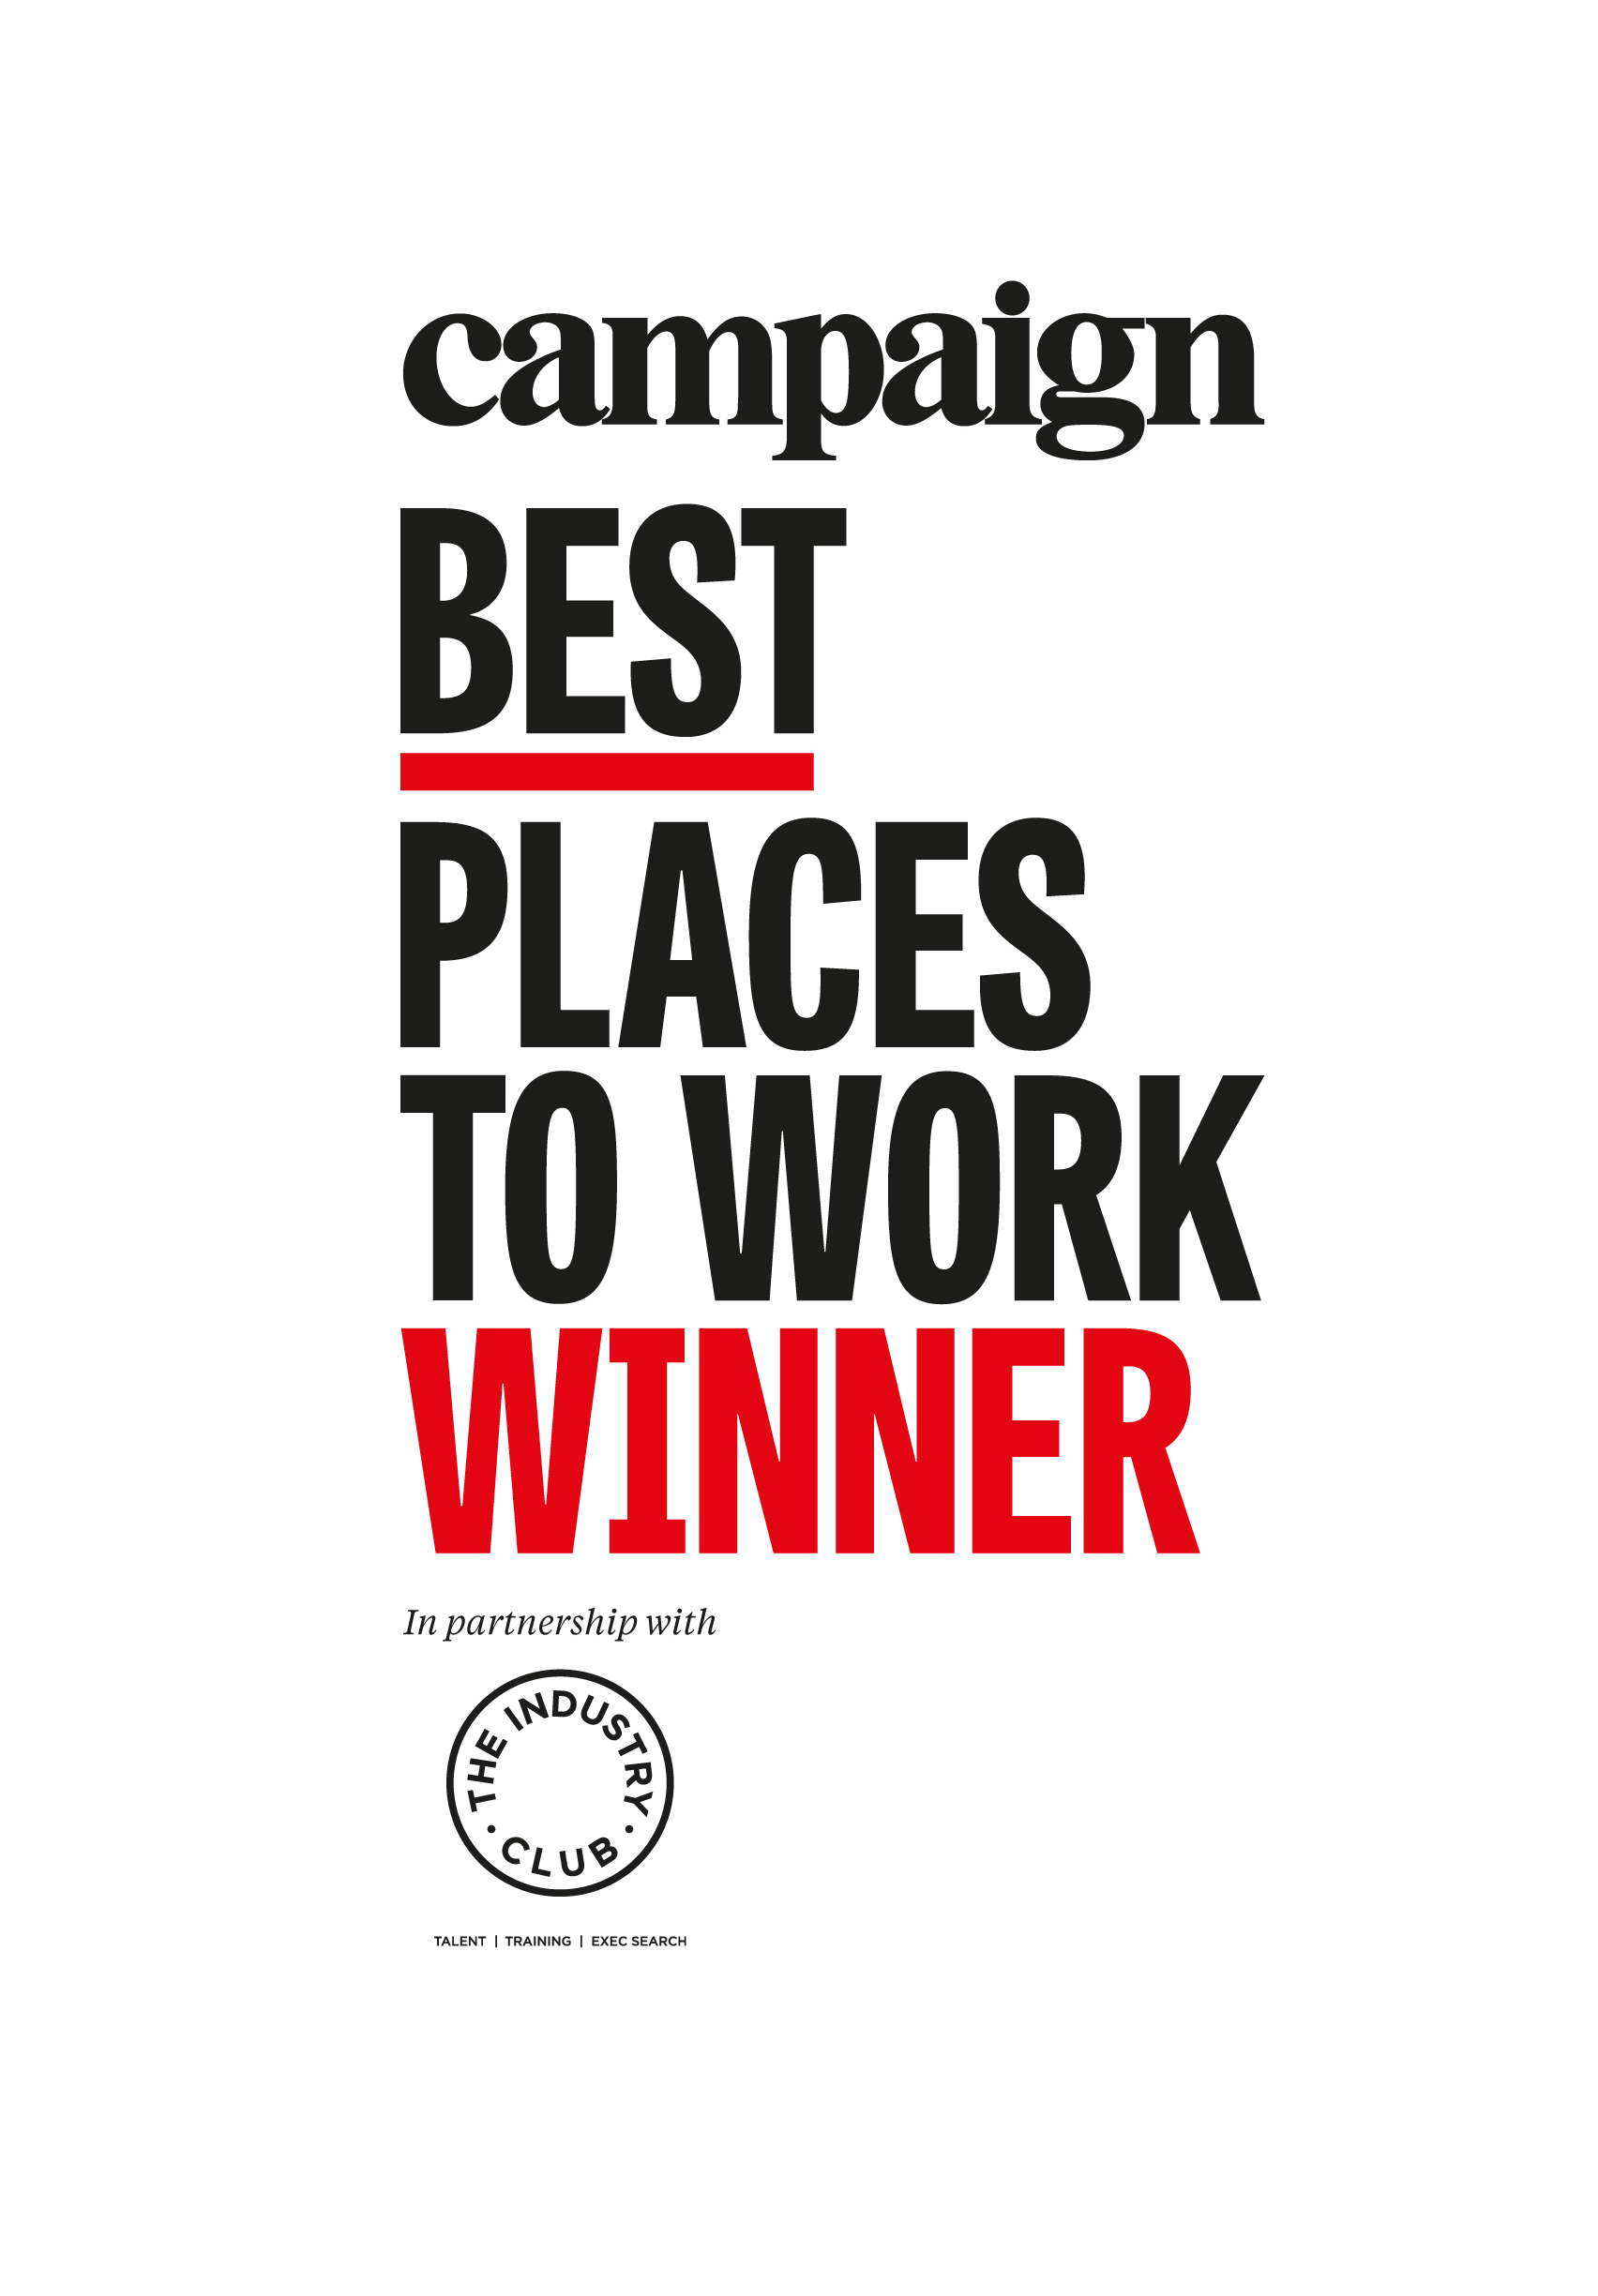 https://www.fatbeehive.com/wp-content/uploads/2019/11/Campaign-Best-Places-to-Work.jpg